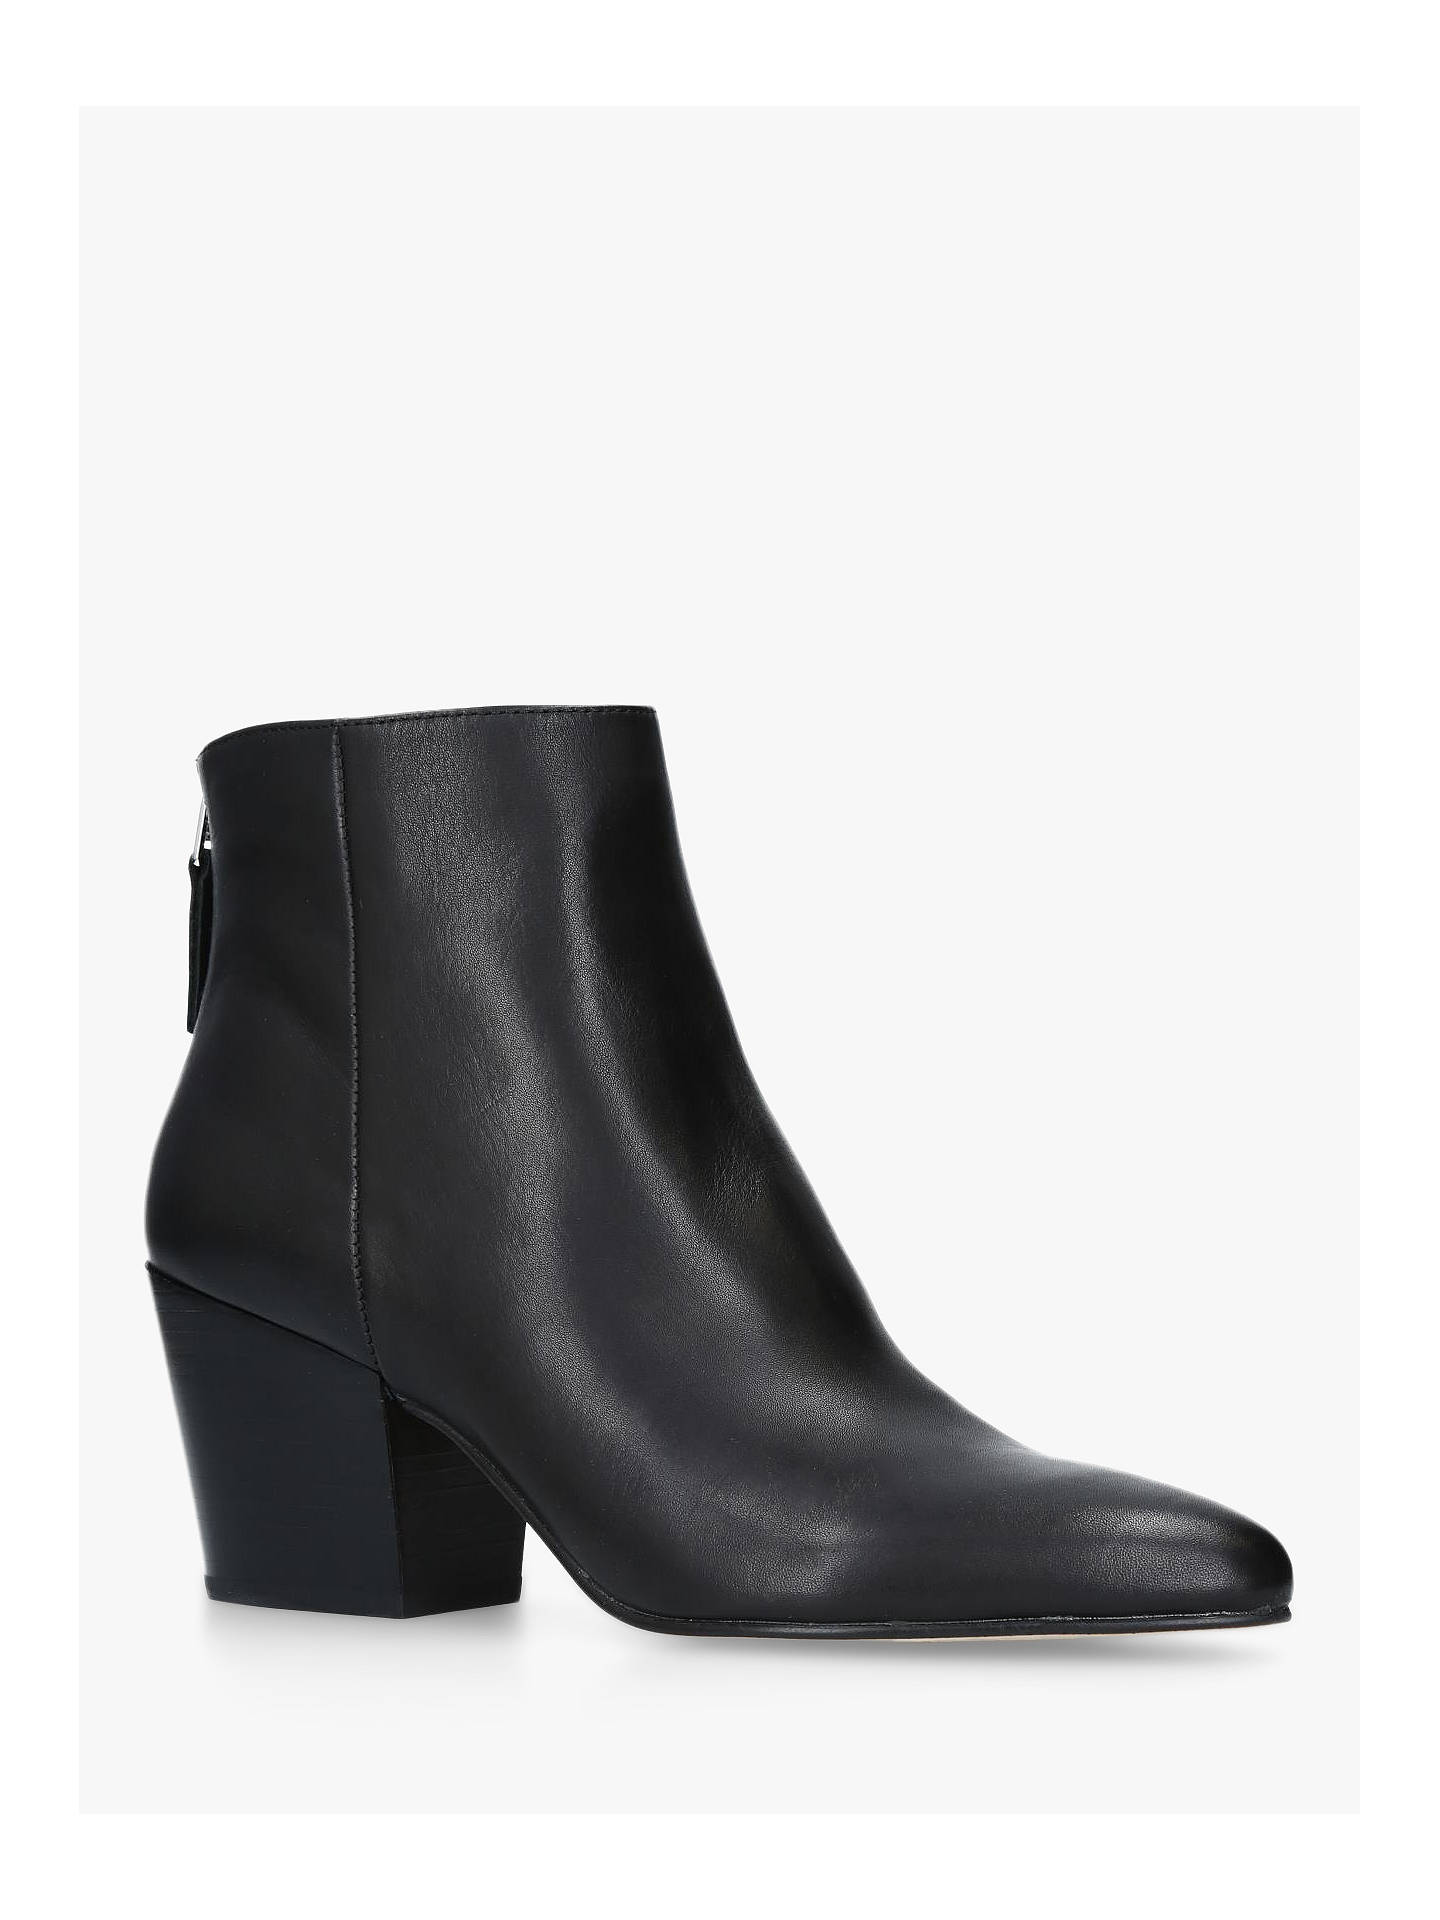 e919d9108d9c7 ... Buy Dolce Vita Coltyn Block Heel Ankle Boots, Black Leather, 4 Online  at johnlewis ...